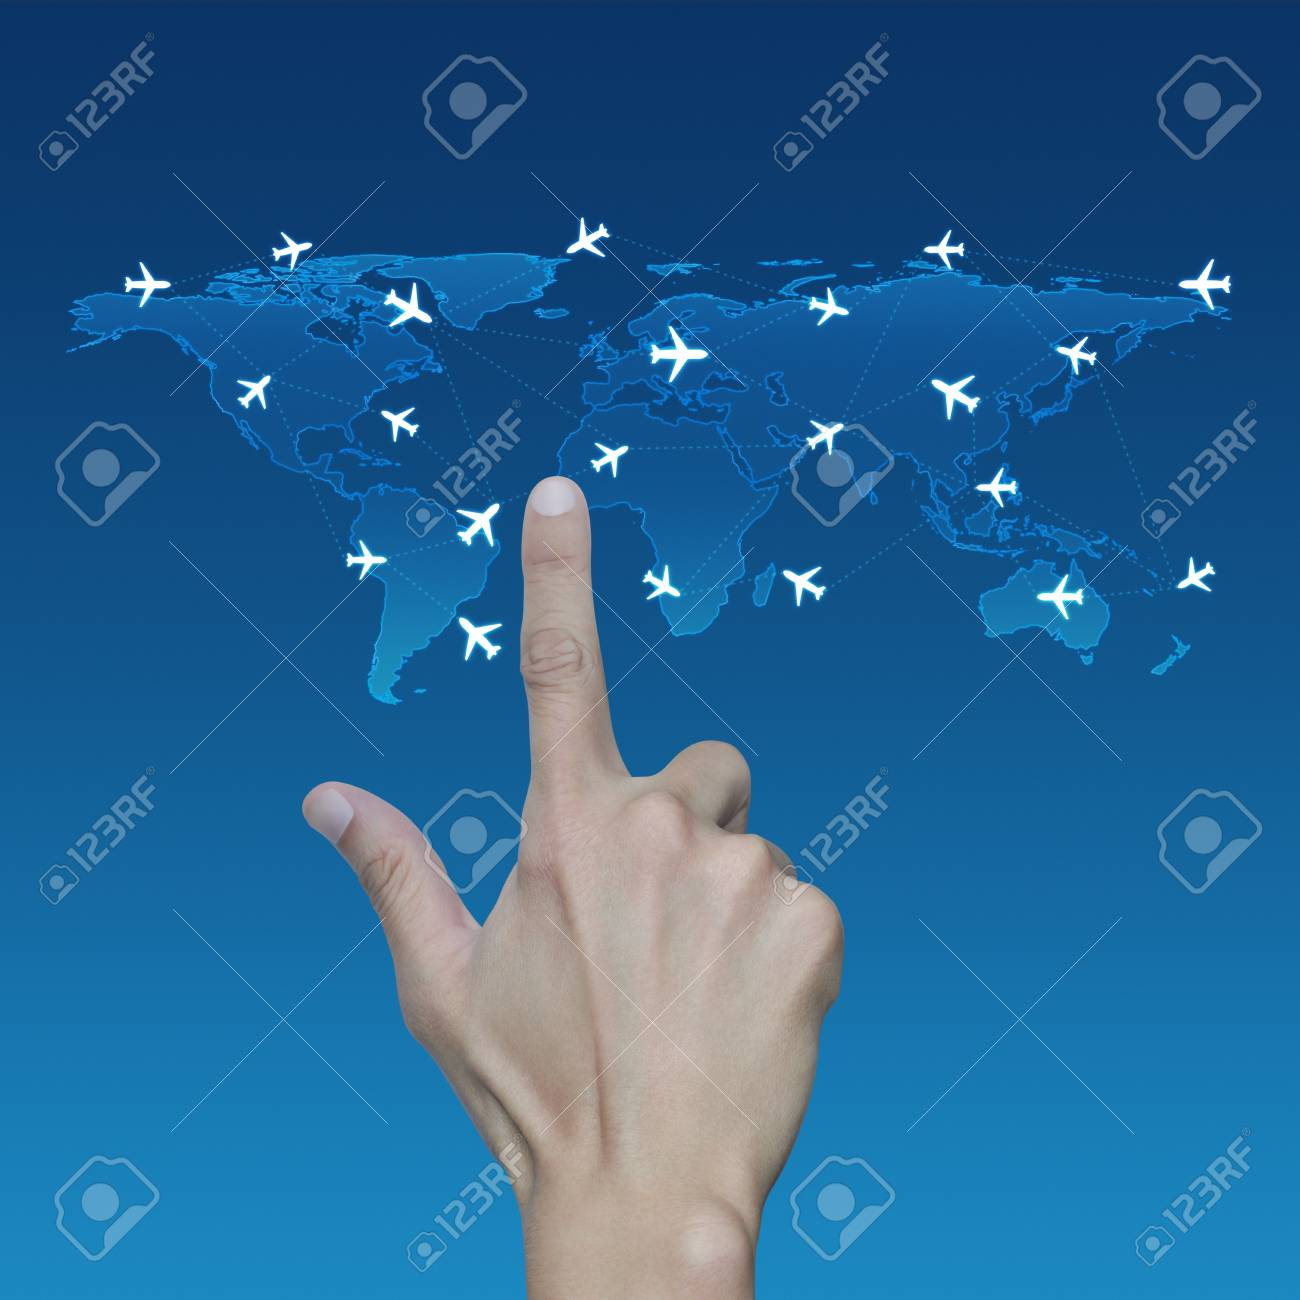 Hand pressing light blue world map with flight routes airplane hand pressing light blue world map with flight routes airplane on blue background transportation concept gumiabroncs Gallery